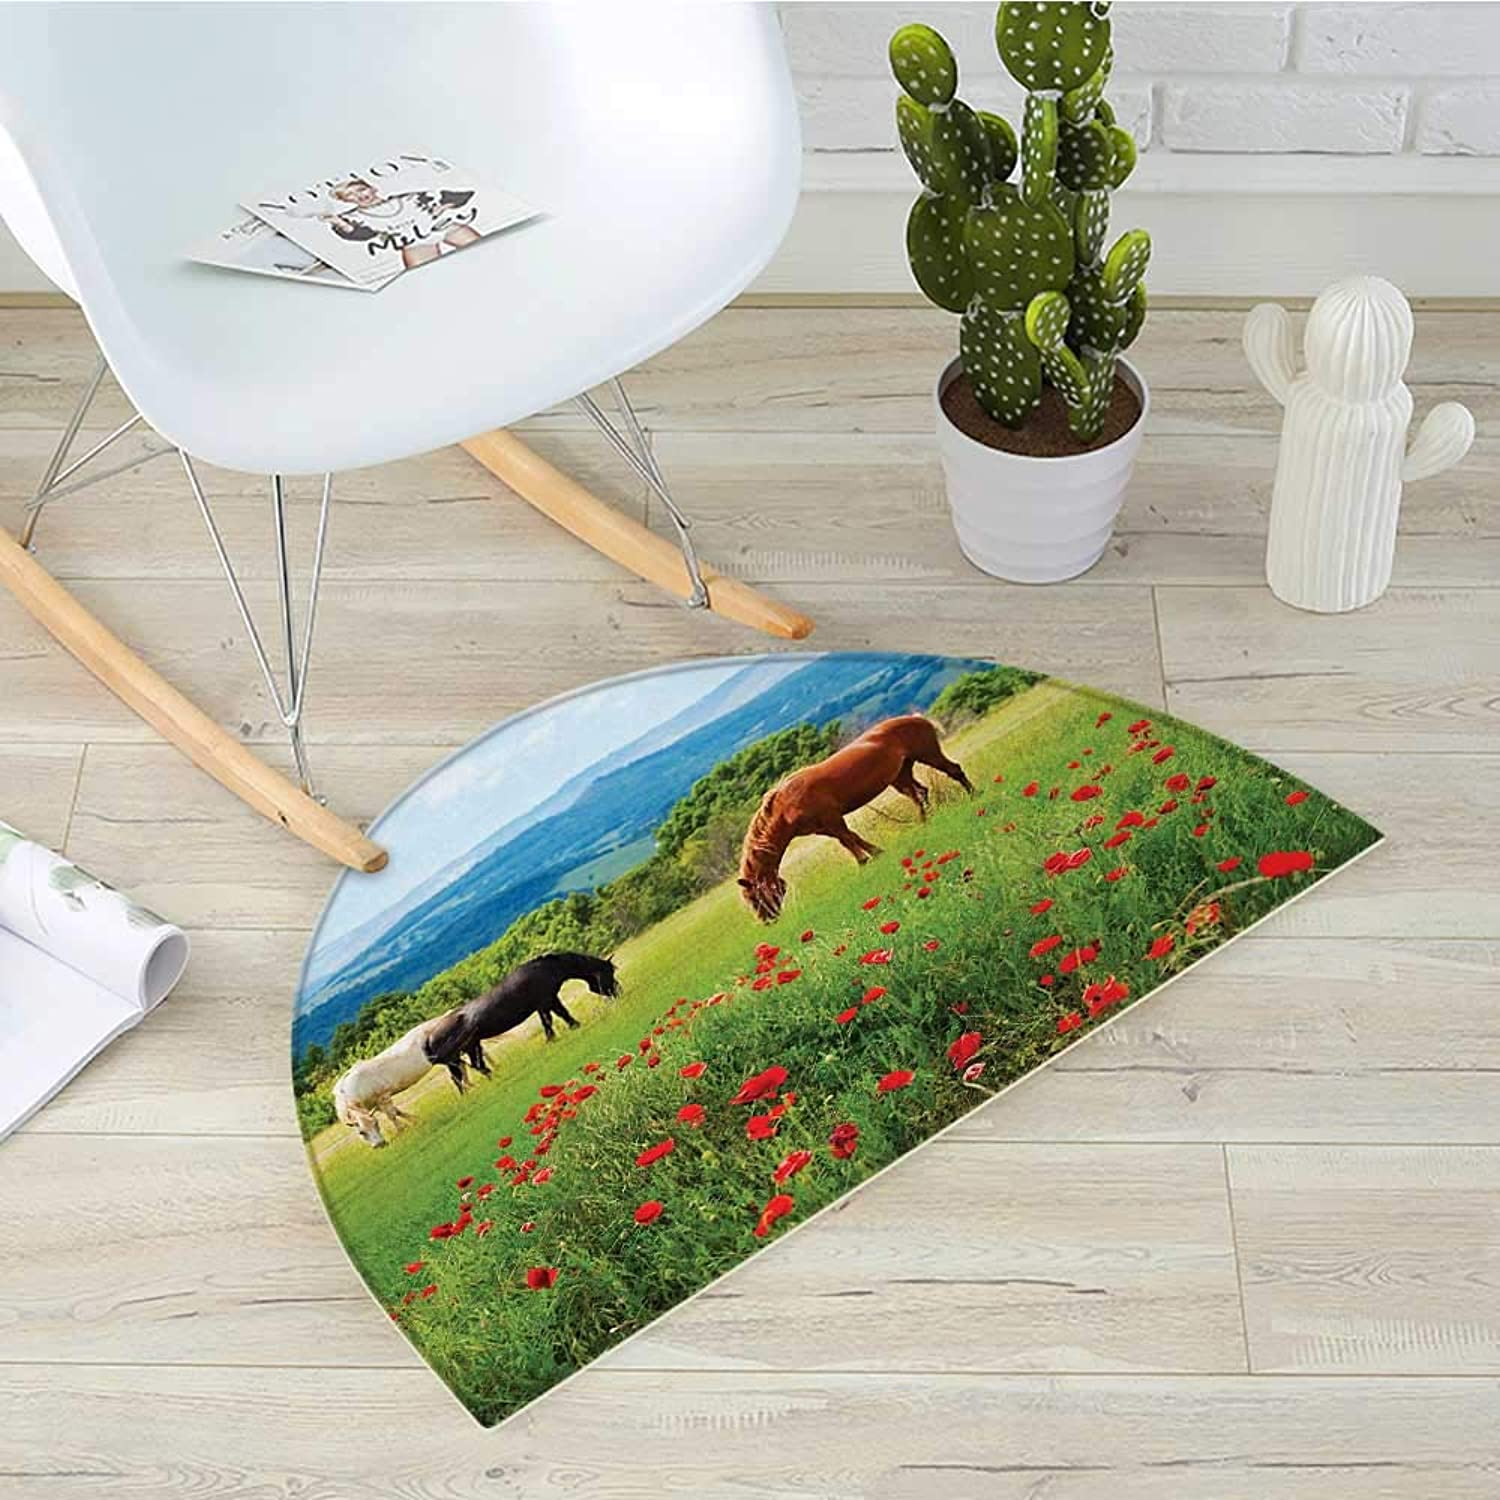 Horses Half Round Door mats Various Kinds of Horses Eating Grass in Field Mountain Landscape Rural Scene Print Bathroom Mat H 39.3  xD 59  Multicolor